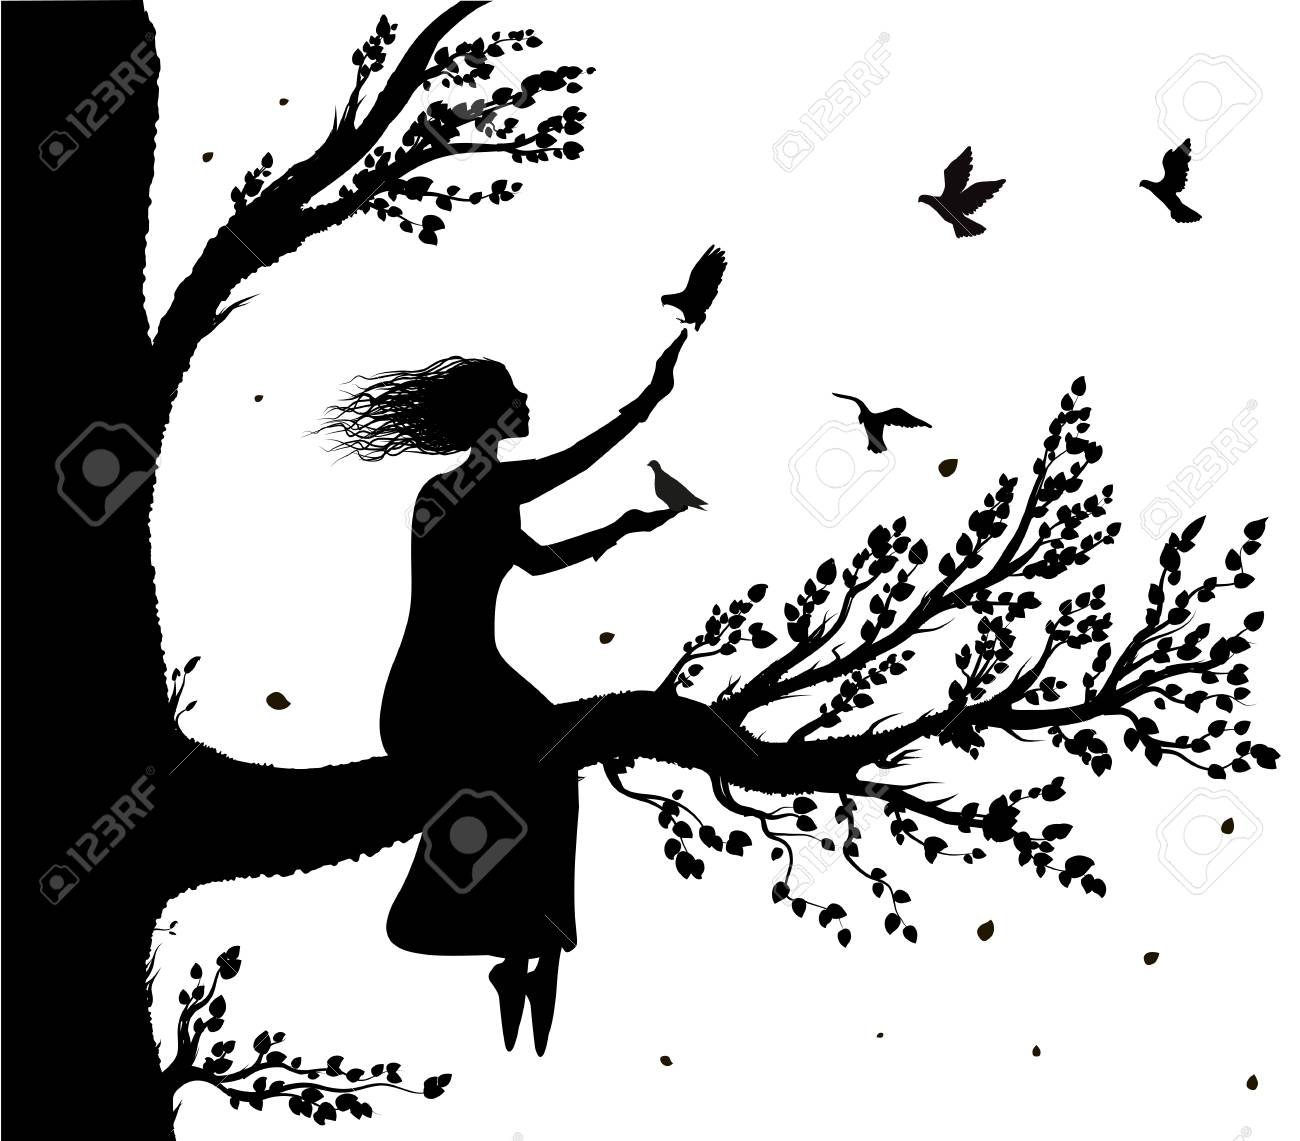 Girl sitting on big tree branch an holding the pigeons flying to her, autumn wind and birds silhouette, secret place, childhood memory, - 90749487